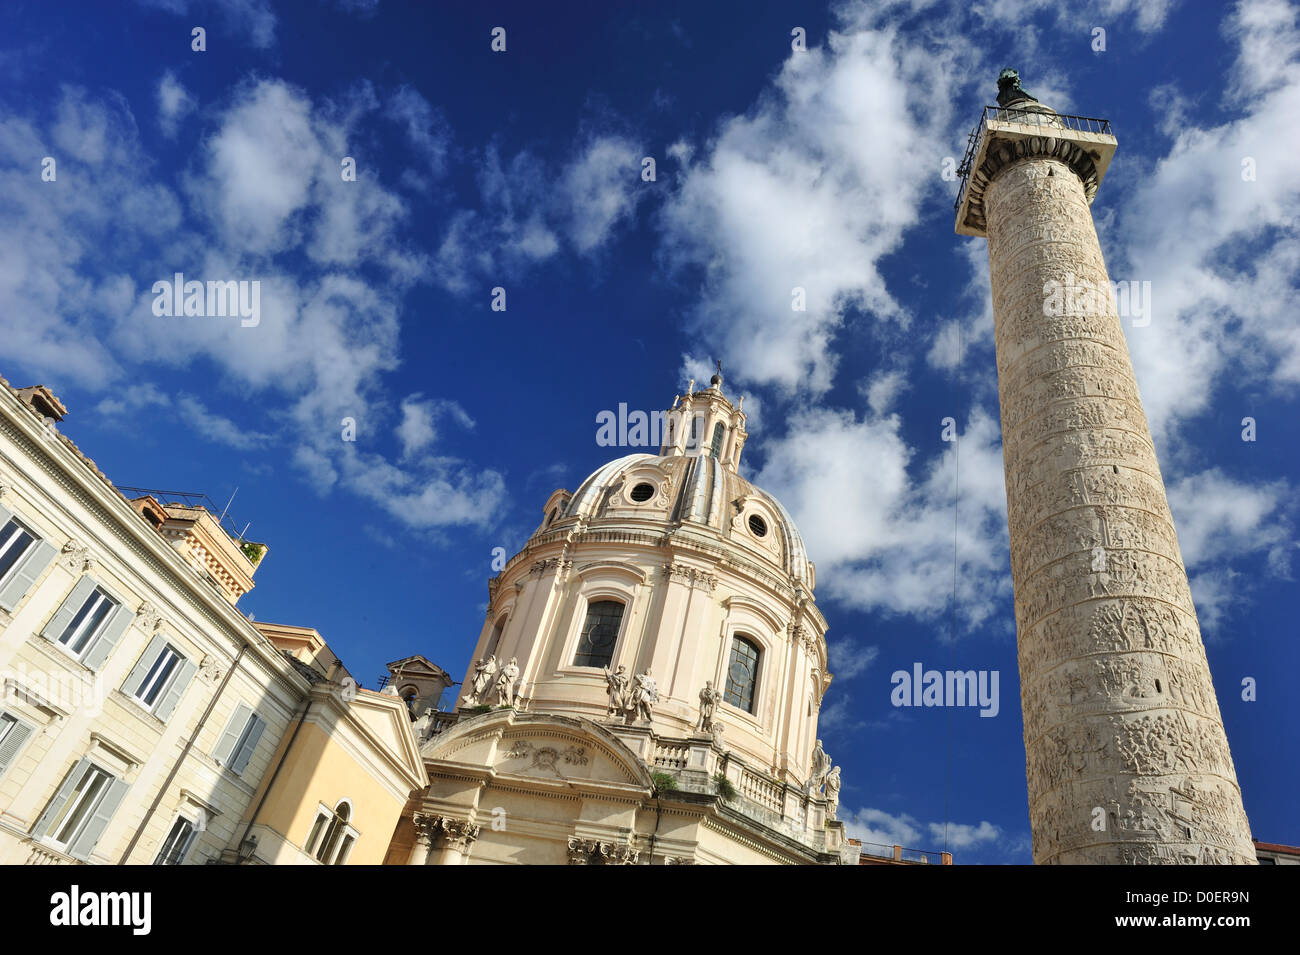 Trajan's Column located in the Forum of Trajan, the largest of the imperial forums in Rome, Italy - Stock Image